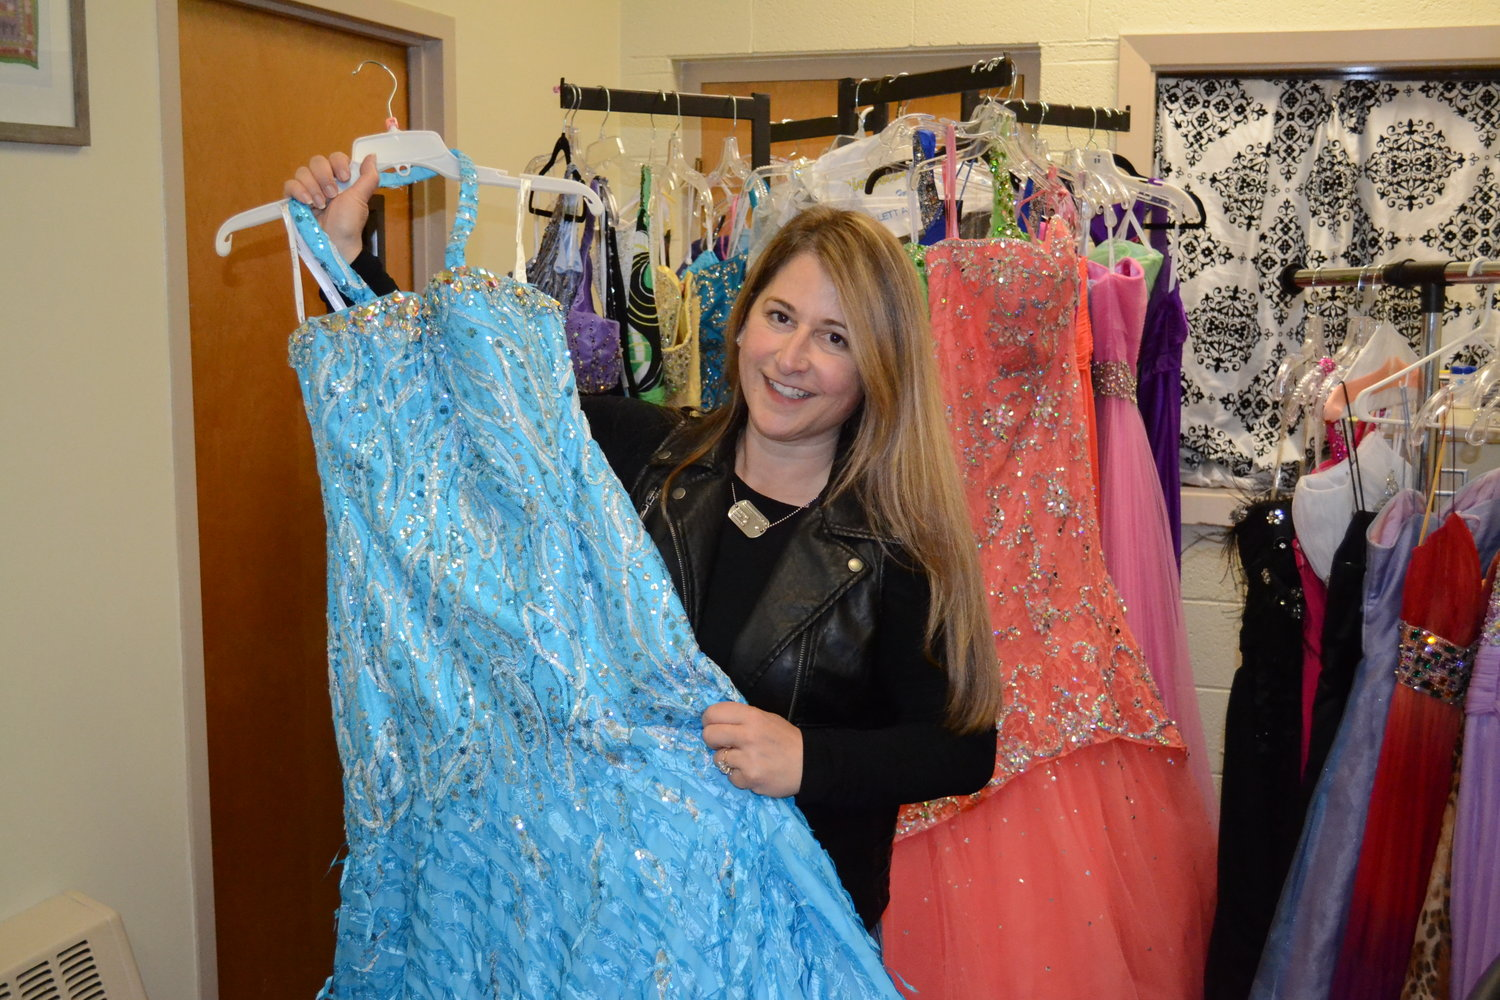 PURVEYOR OF PROM: Heidi Fanion, school social worker, has over 50 dresses in every size and style imaginable available to students for free, just in time for prom.